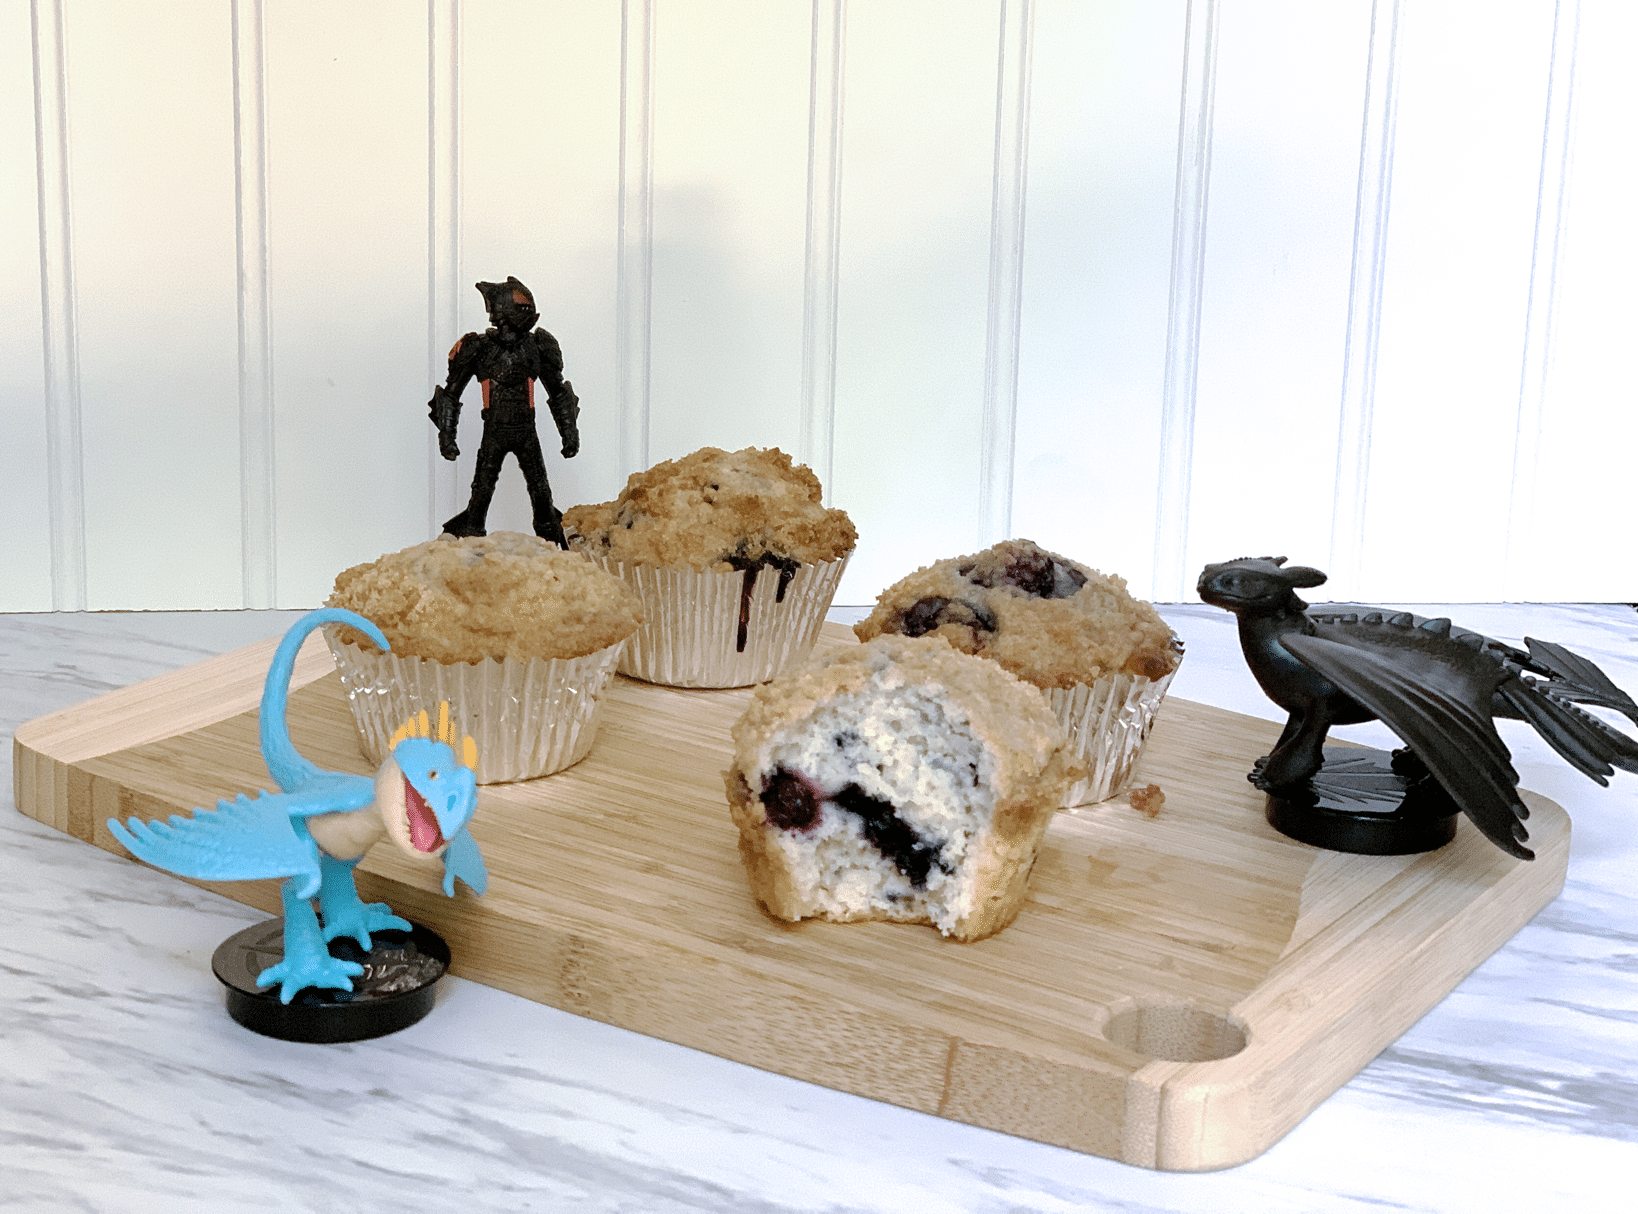 Blueberry muffins with streusel topping with how to train your dragon